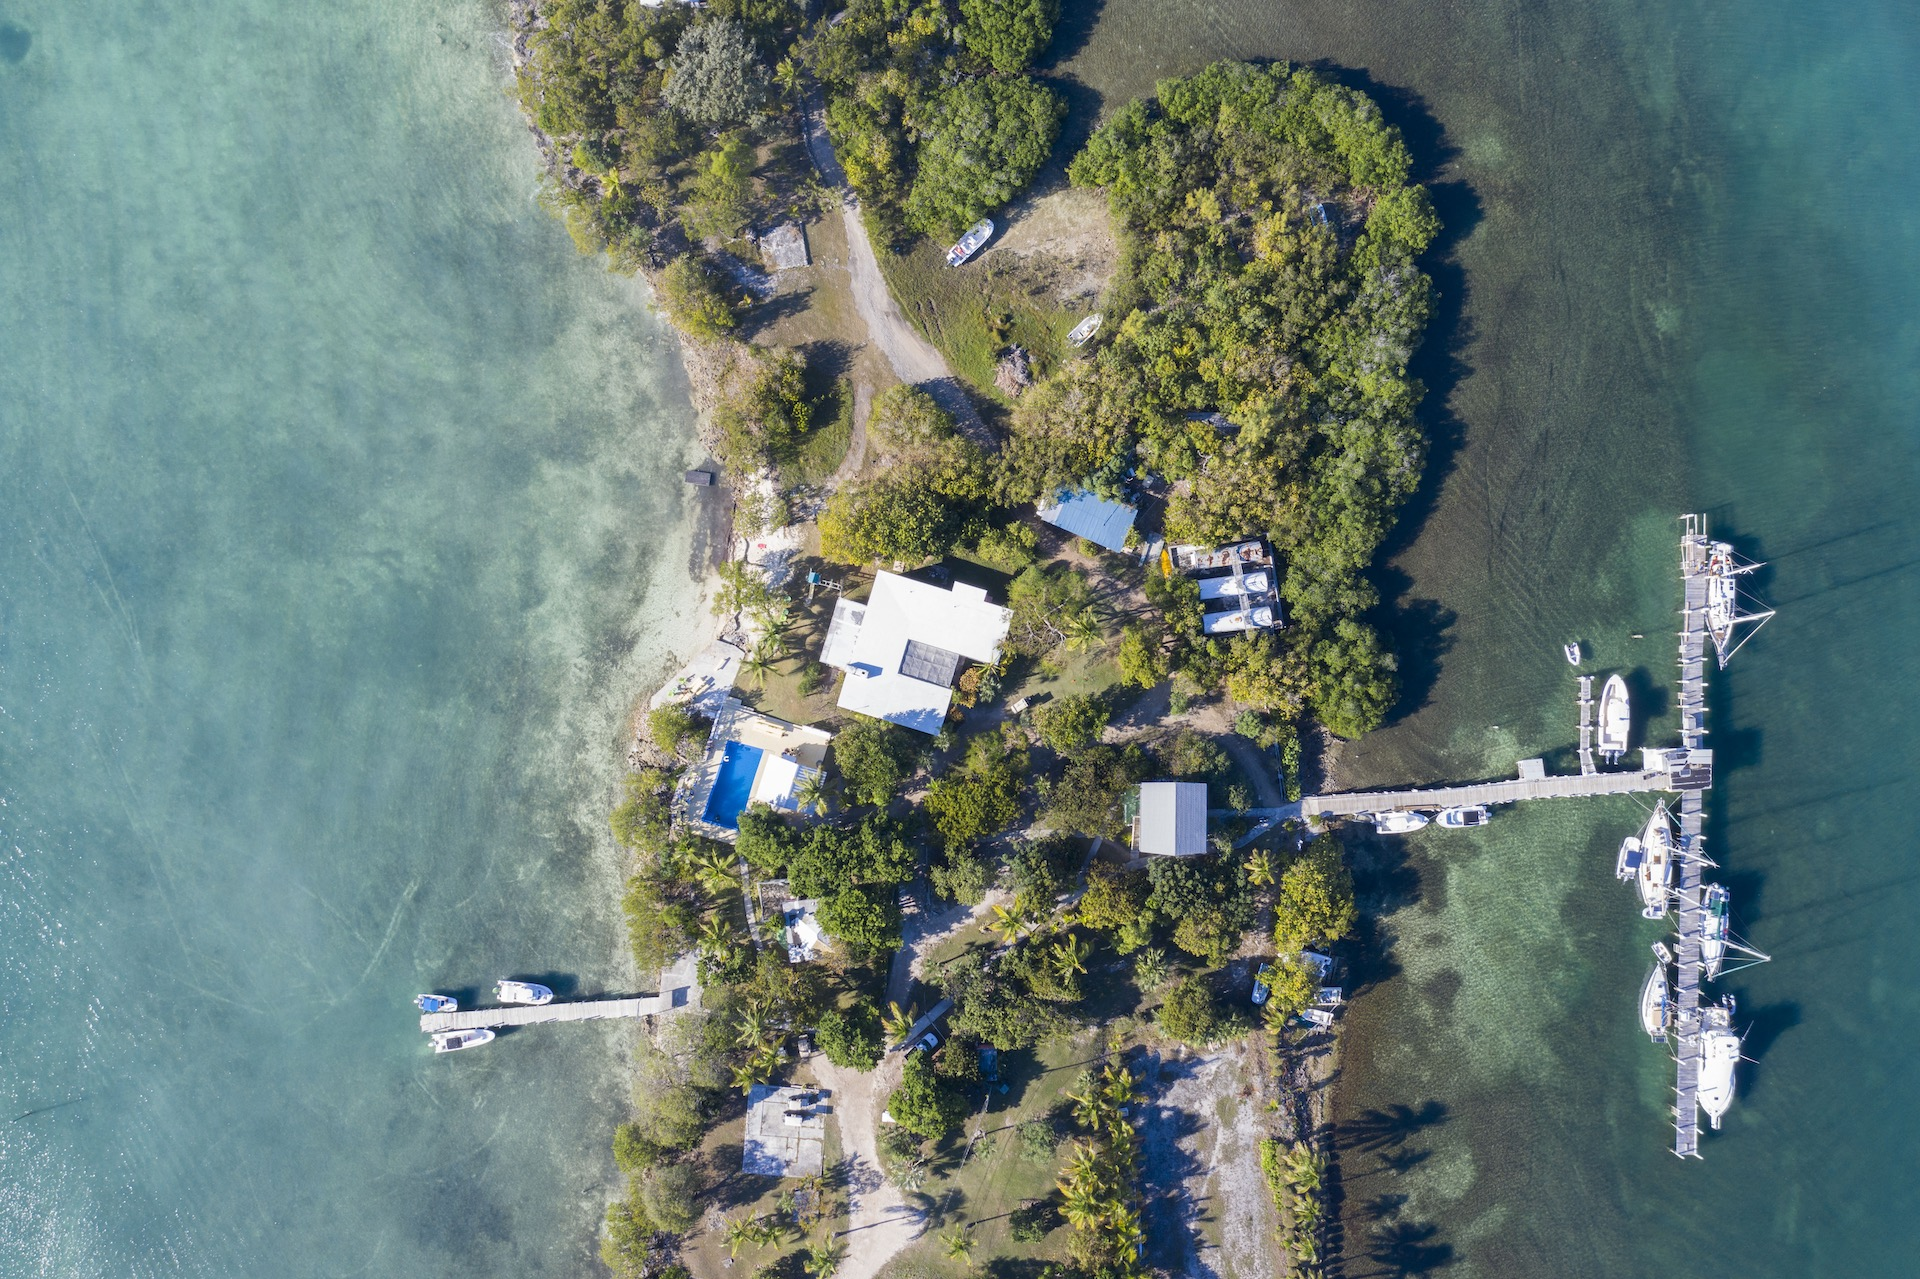 Commercial Business and property for sale in Green Turtle Cay